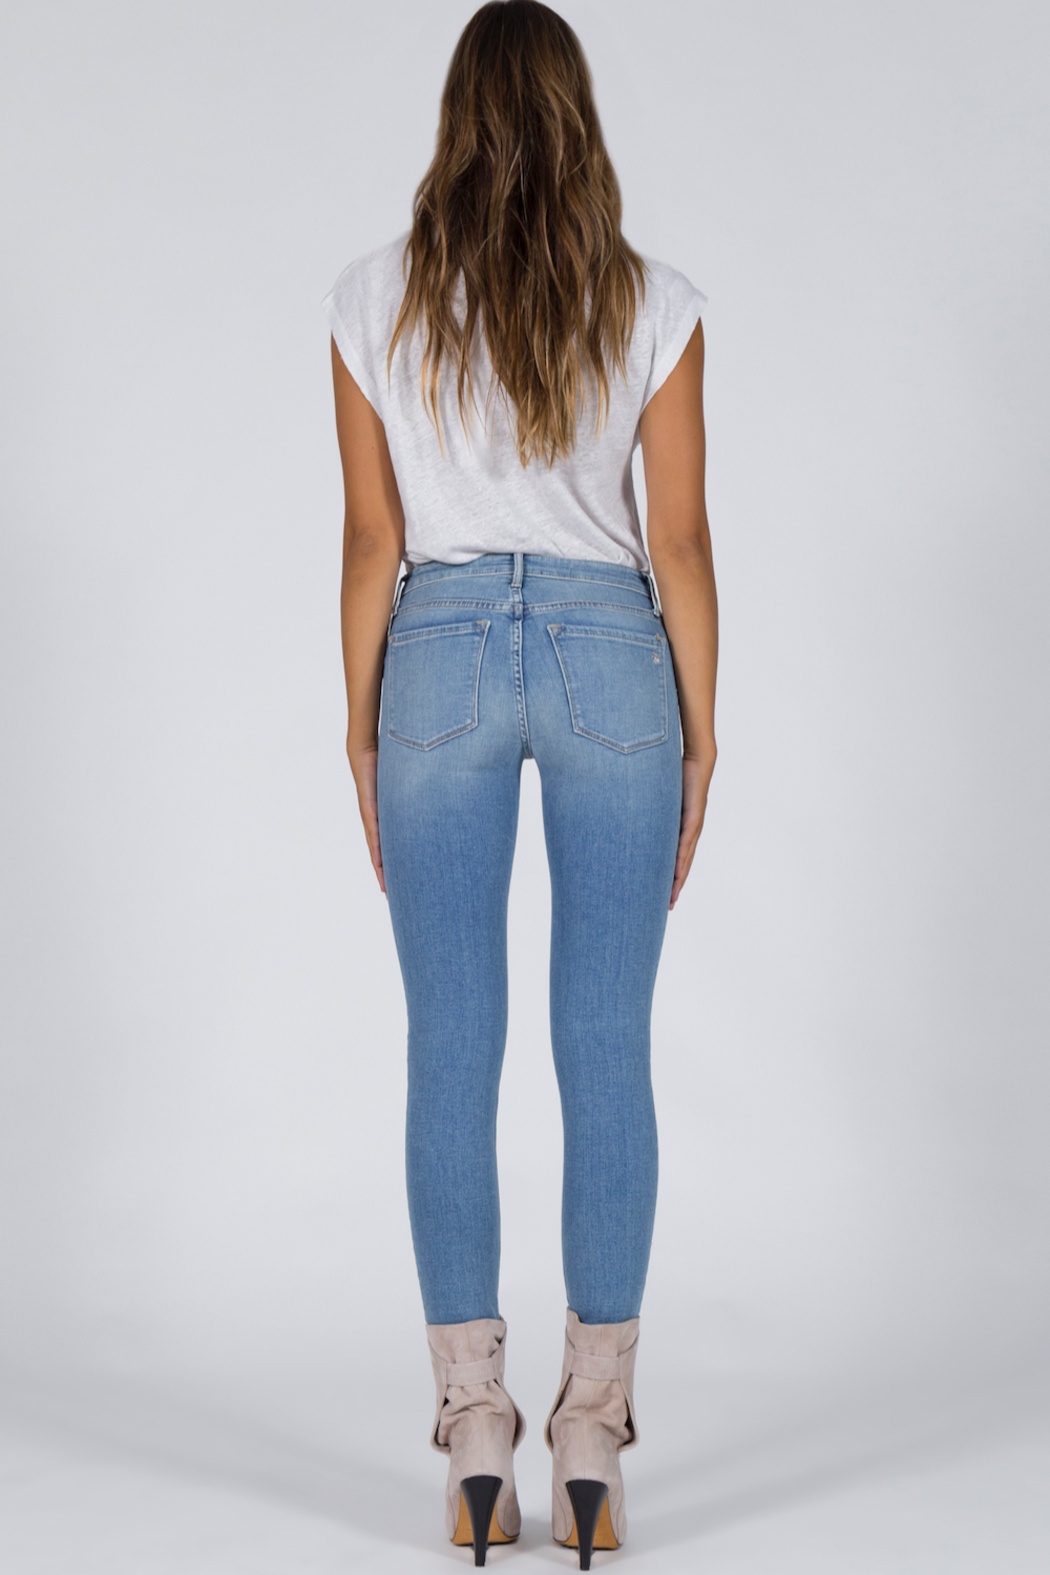 Black Orchid Denim Jude - Edge of My Seat - Back Cropped Image